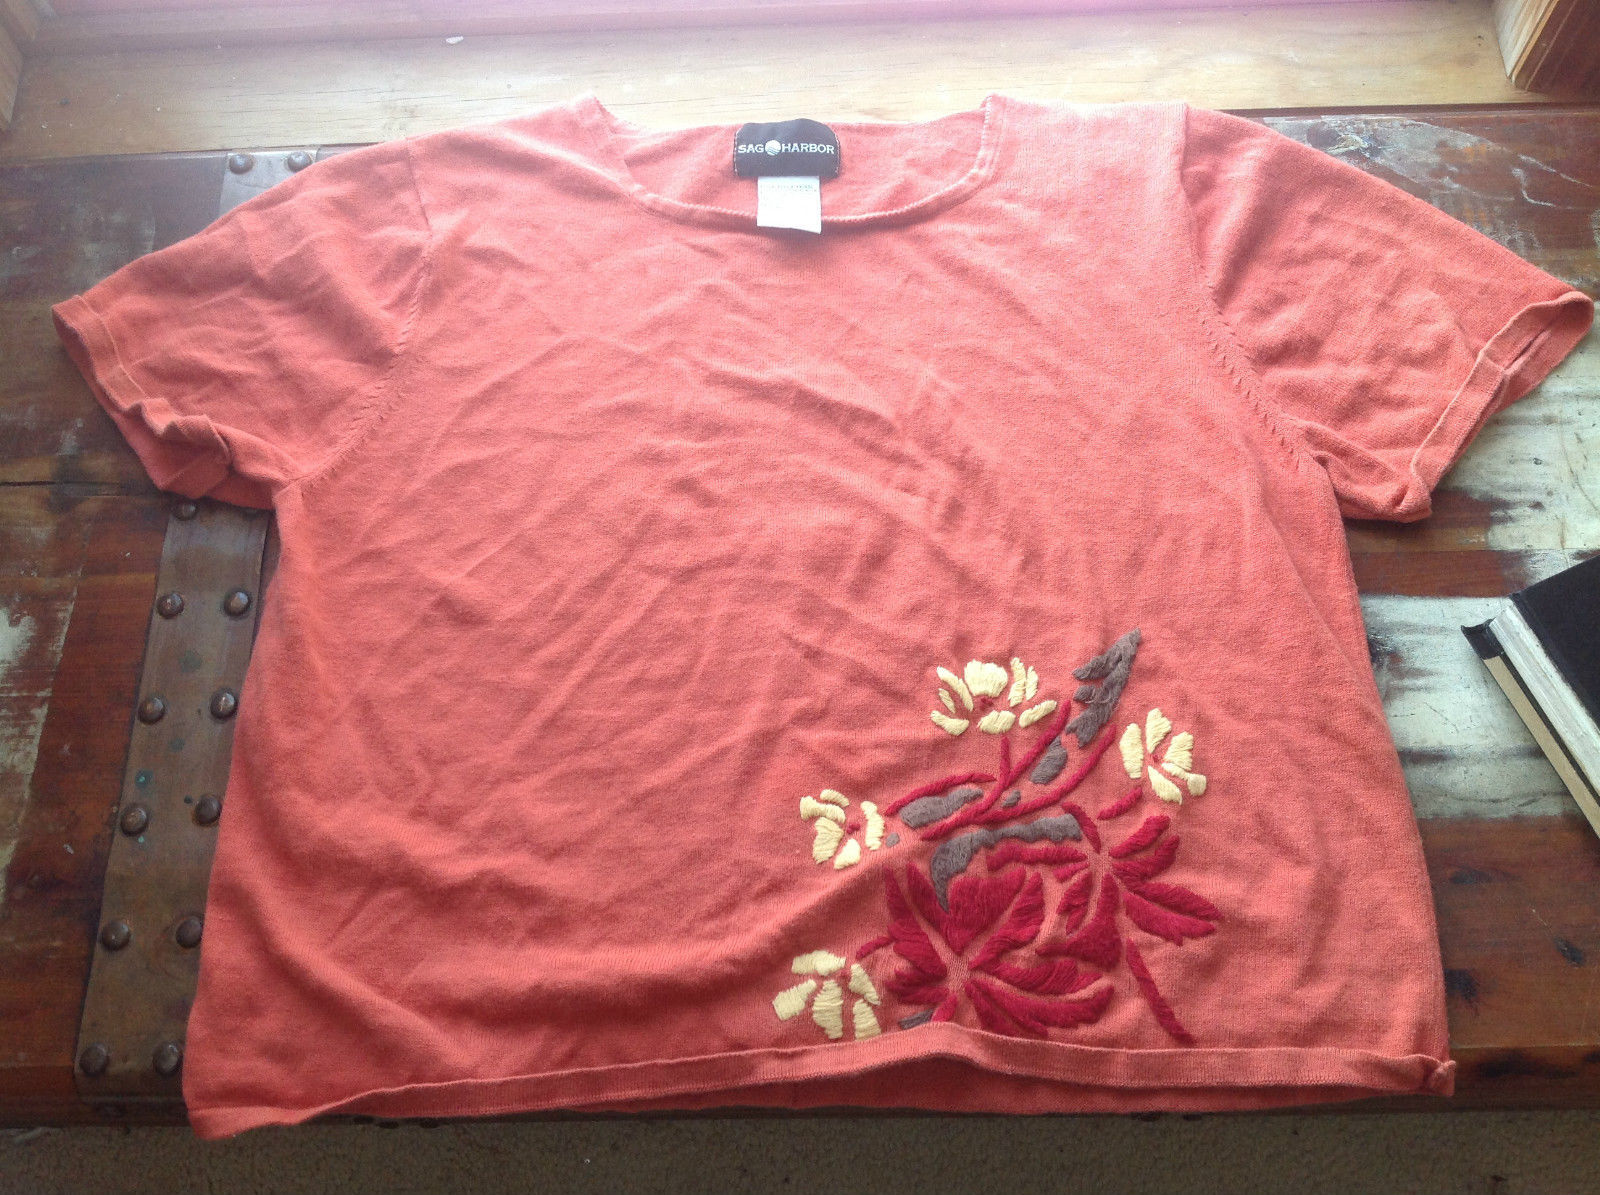 Sag Harbor Short Sleeve Orange Sweater with Pattern on Bottom Right Size XL